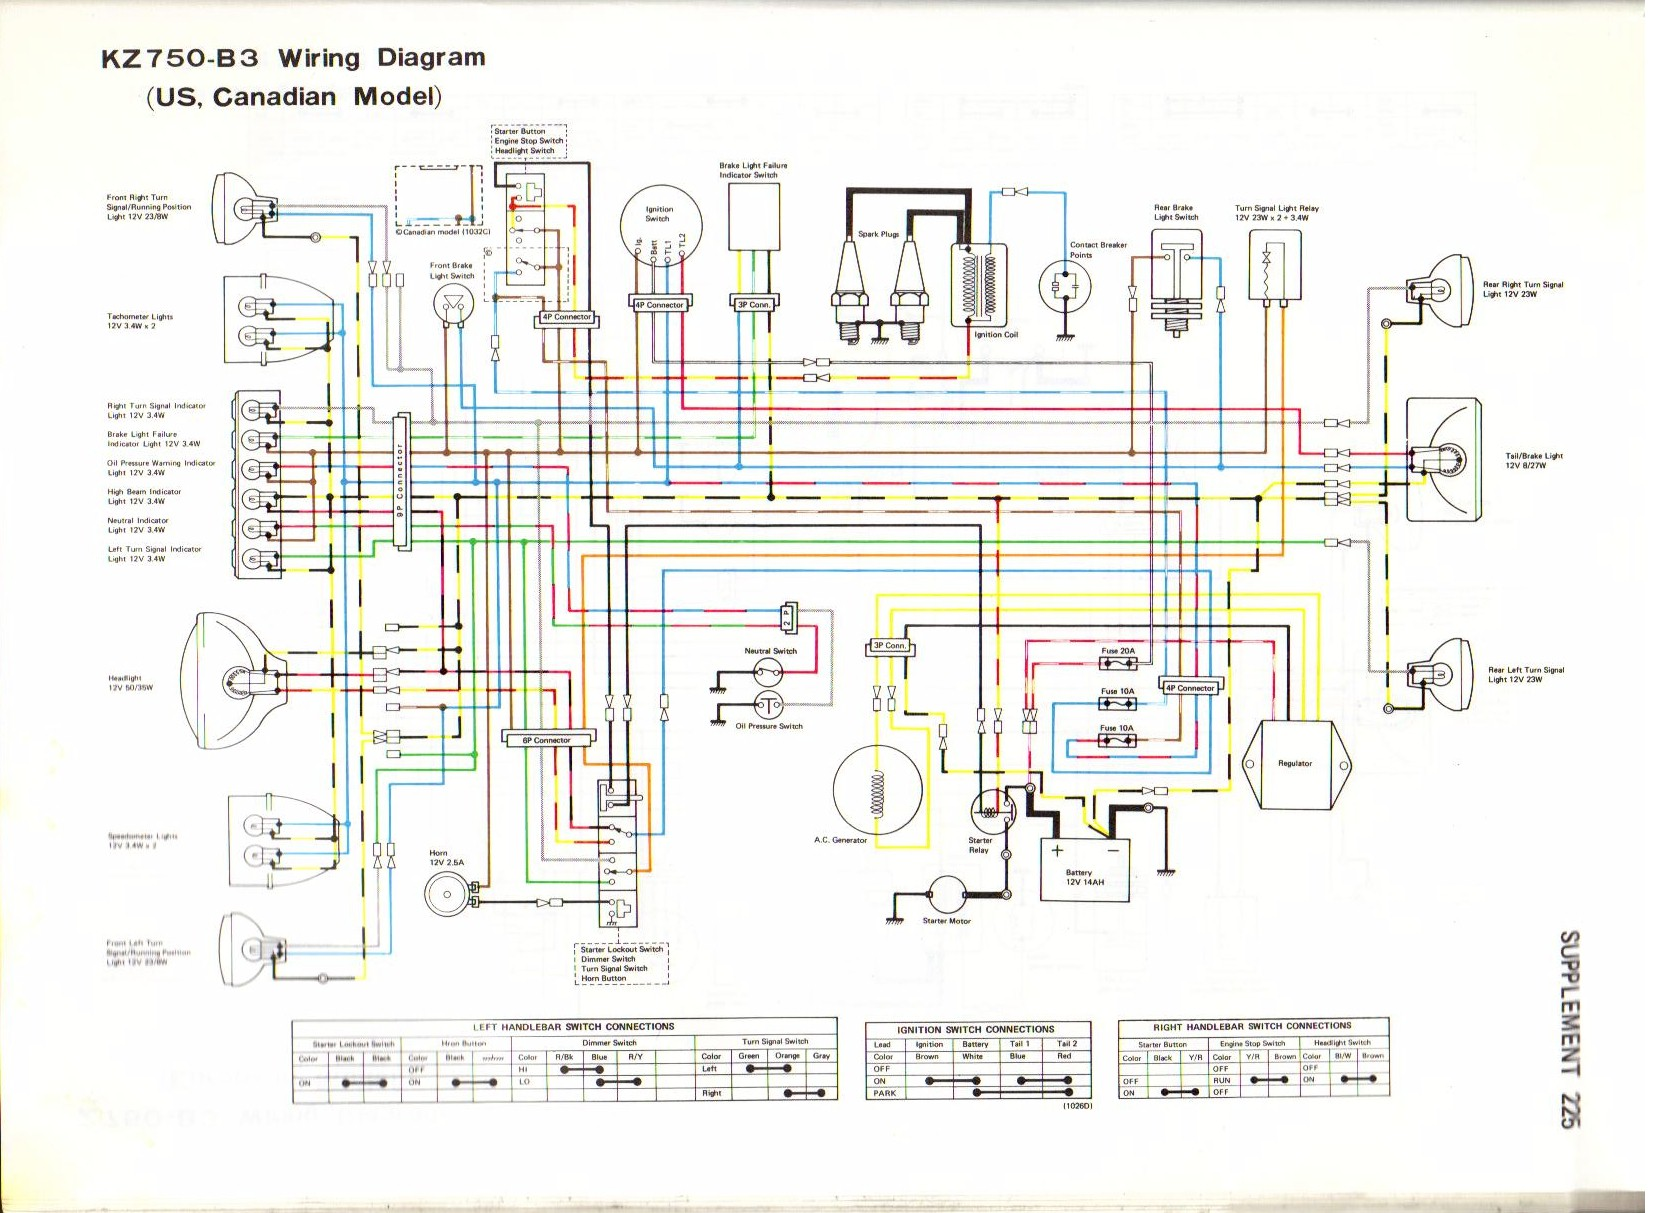 kz900 wiring diagram wiring library House Wiring Diagrams kawasaki kz750 wiring diagram books of wiring diagram \\u2022 klr650 wiring diagram kawasaki kz900 wiring